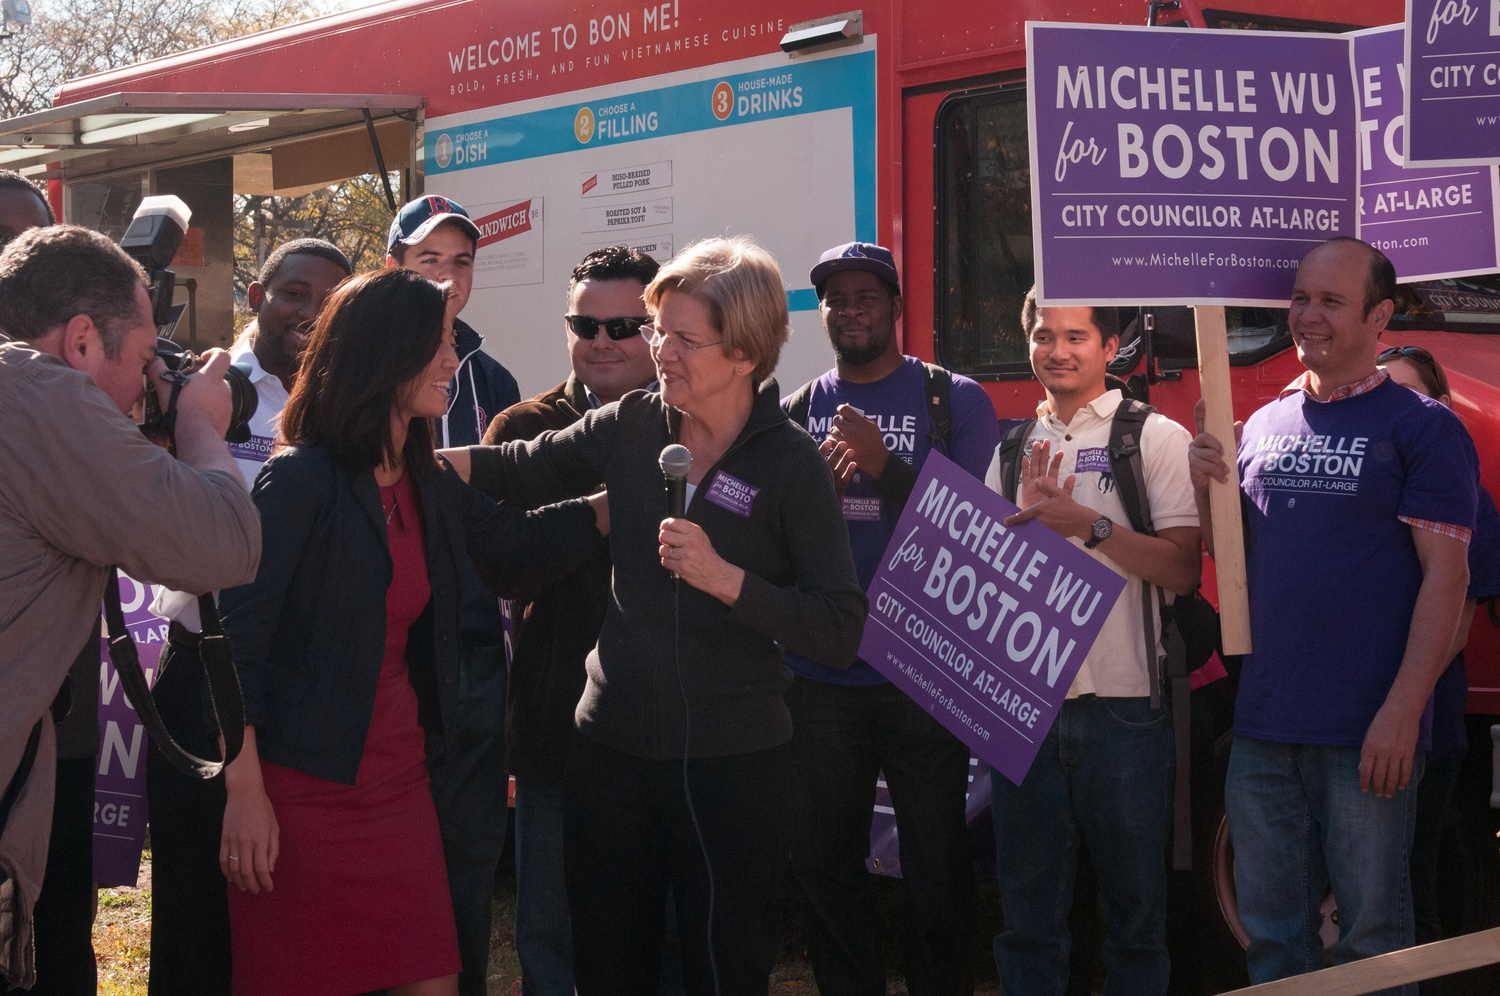 Boston mayoral candidate Michelle Wu '07 garnered several high-profile endorsements in the past month, including one from U.S. Senator Elizabeth Warren (D-Mass.).